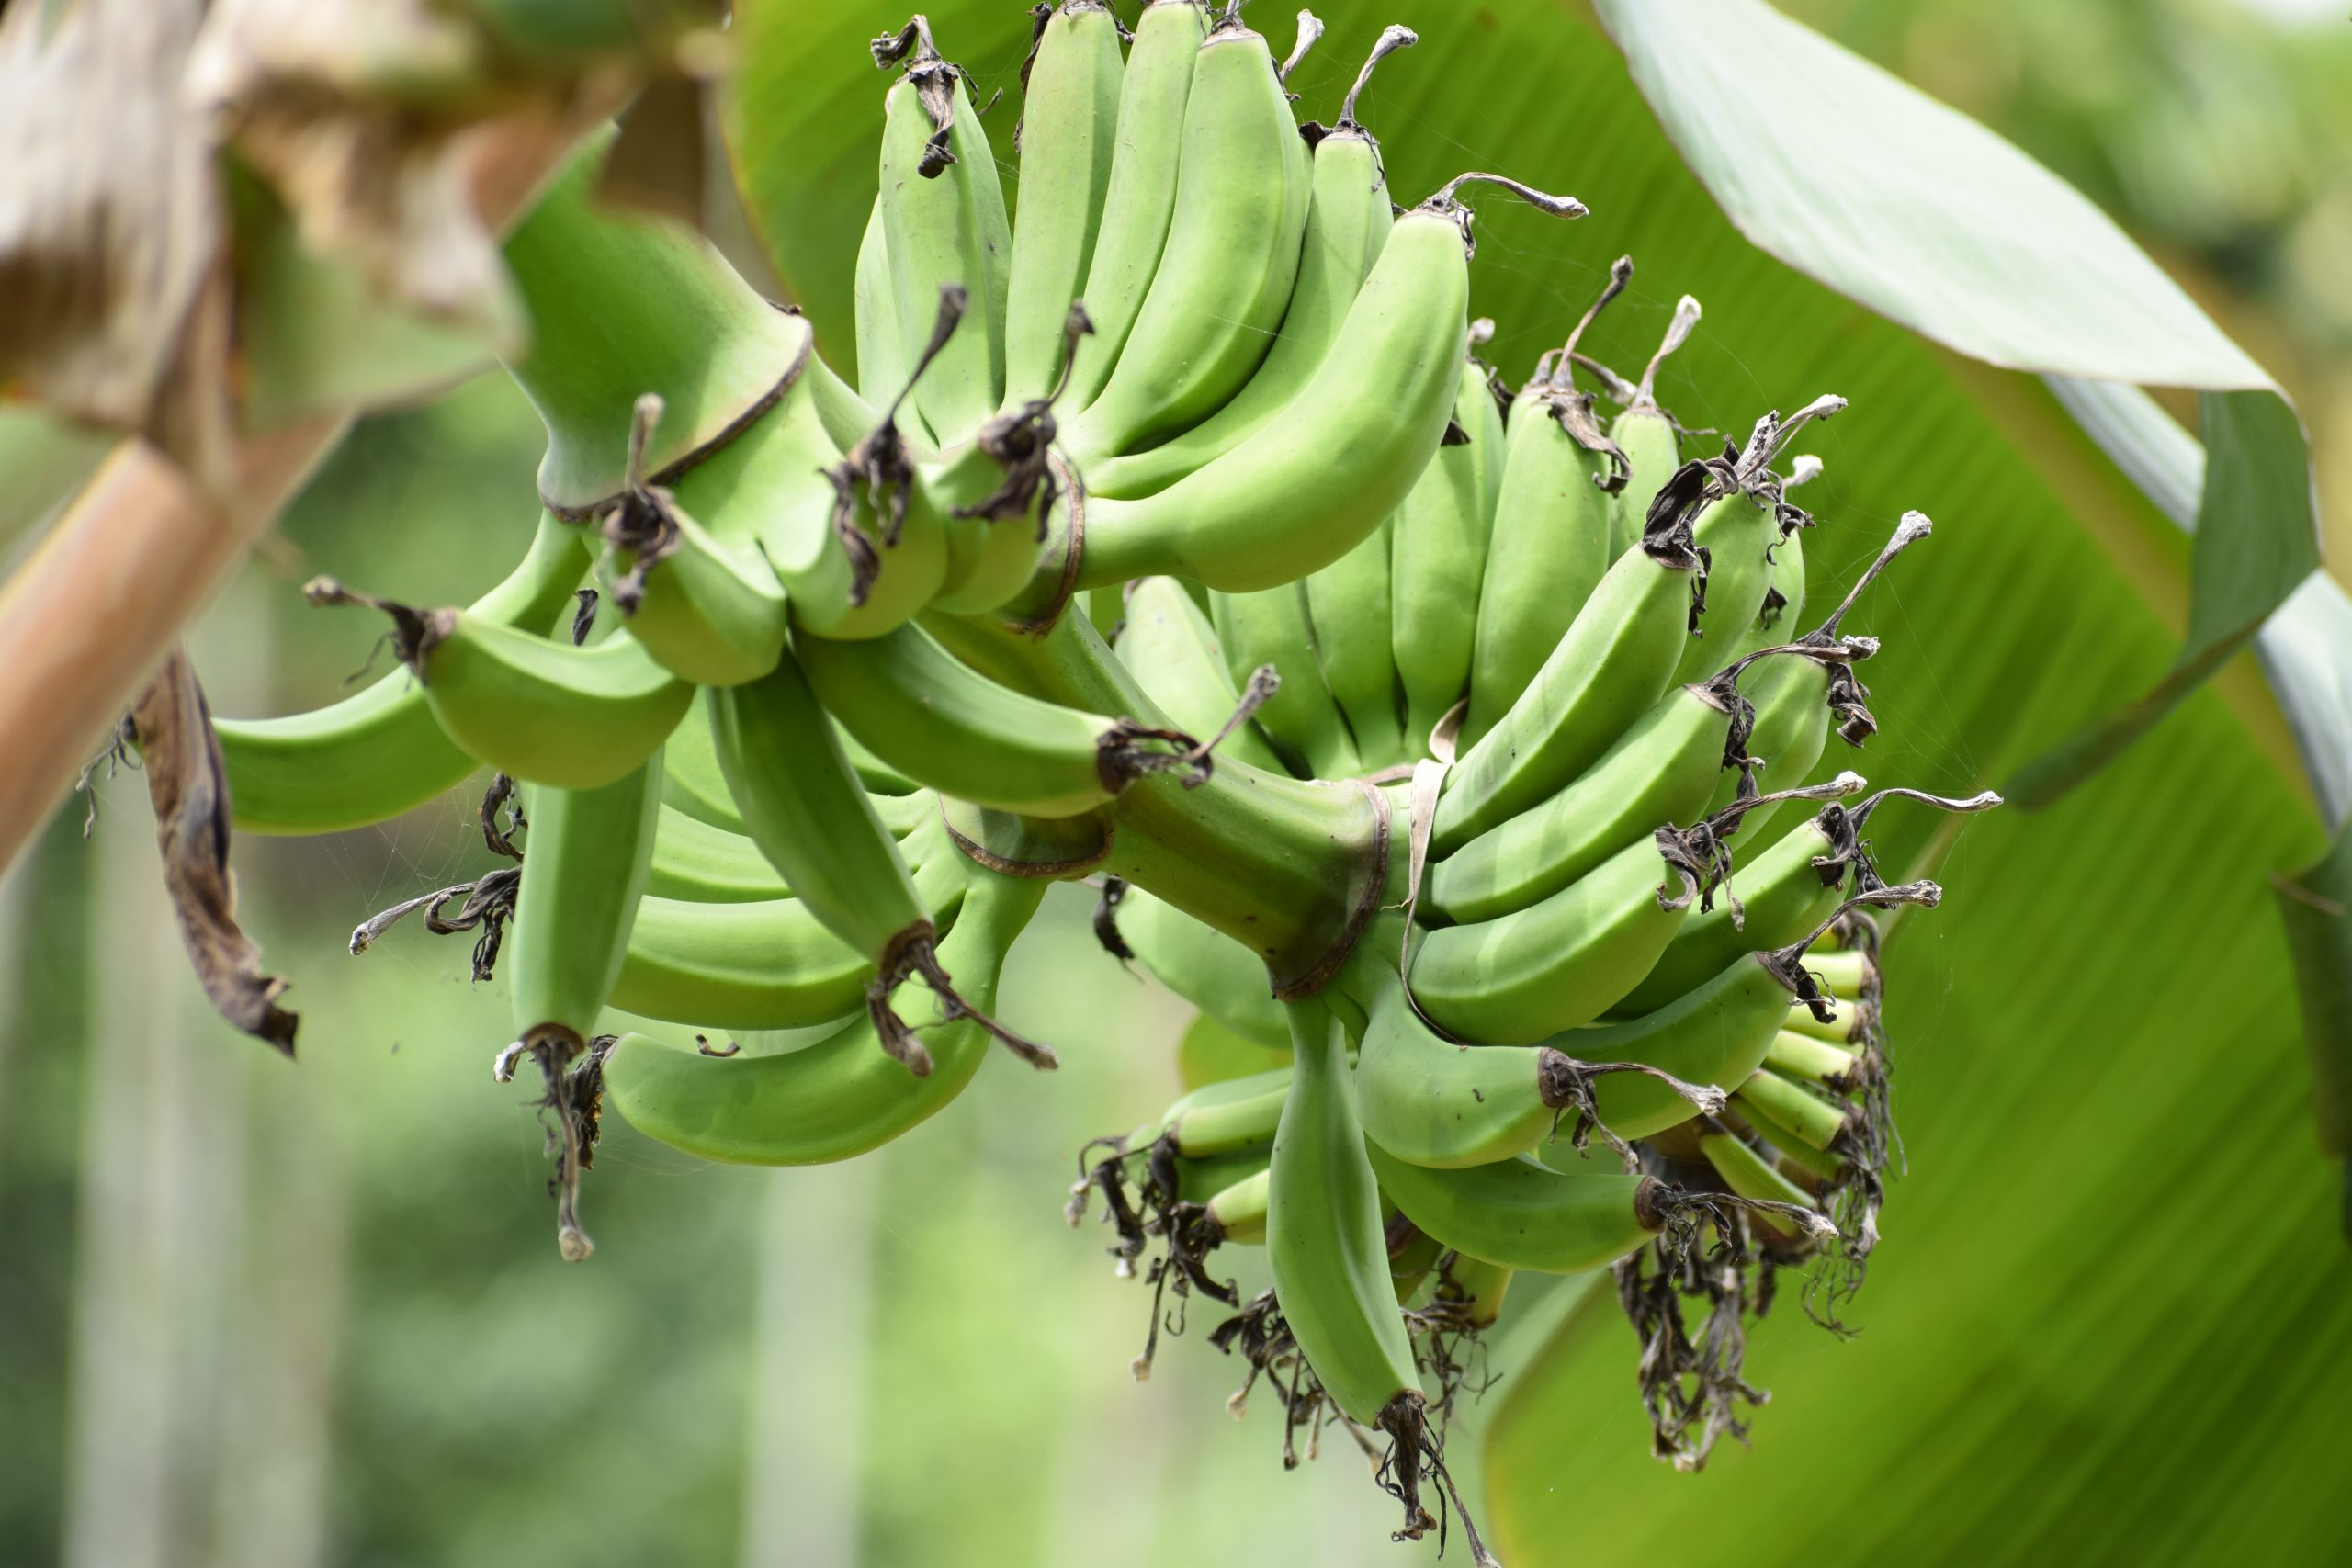 raw bananas on a tree